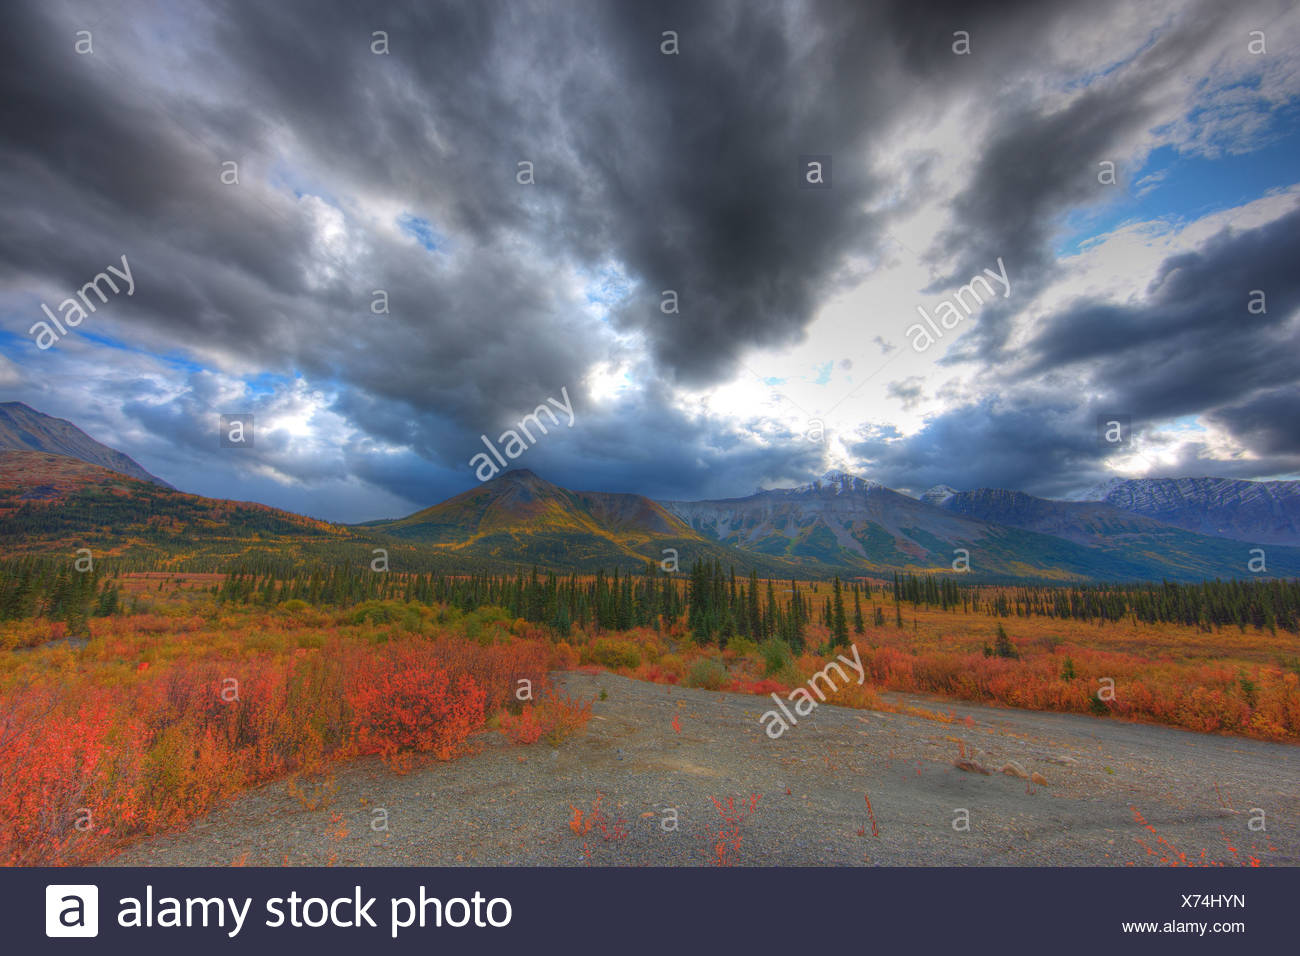 Clearing skies over a storm along the North Canol Road, Yukon. - Stock Image